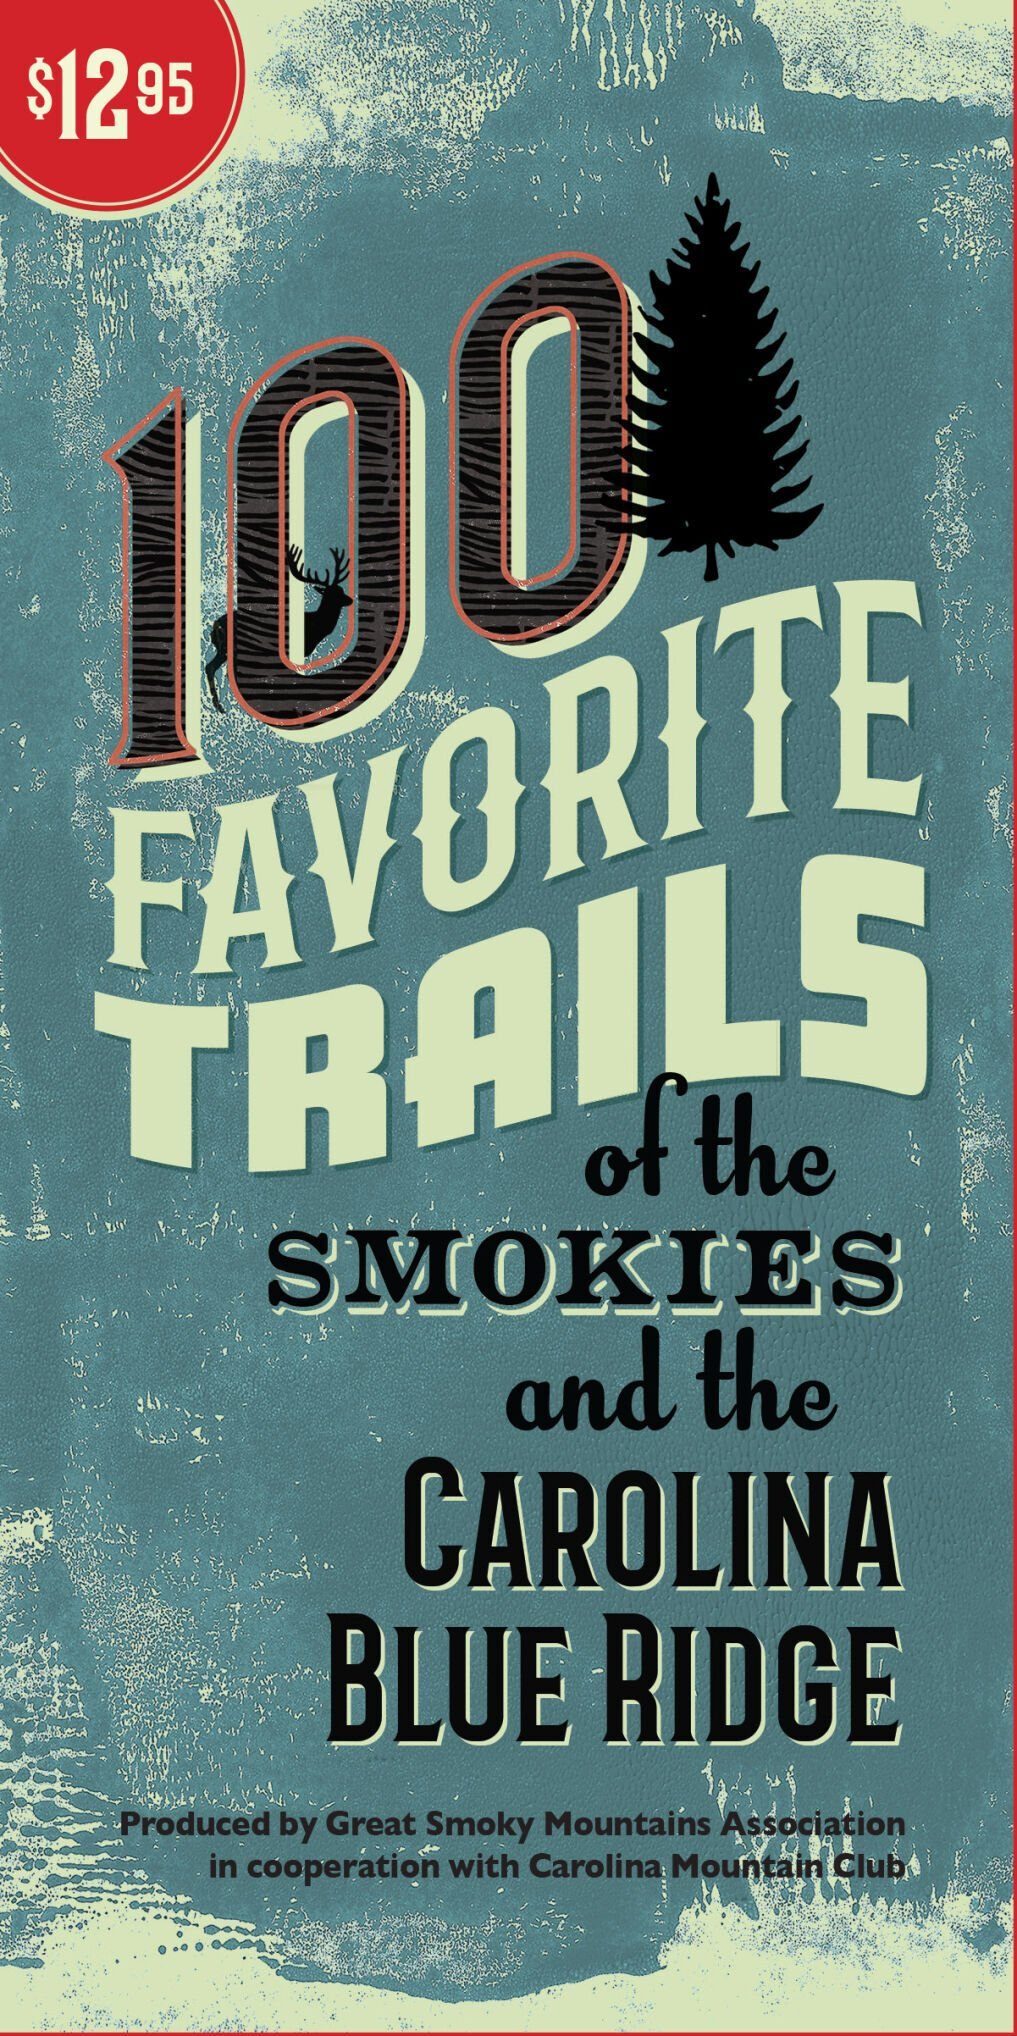 100 Favorite Trails map_cover.jpeg